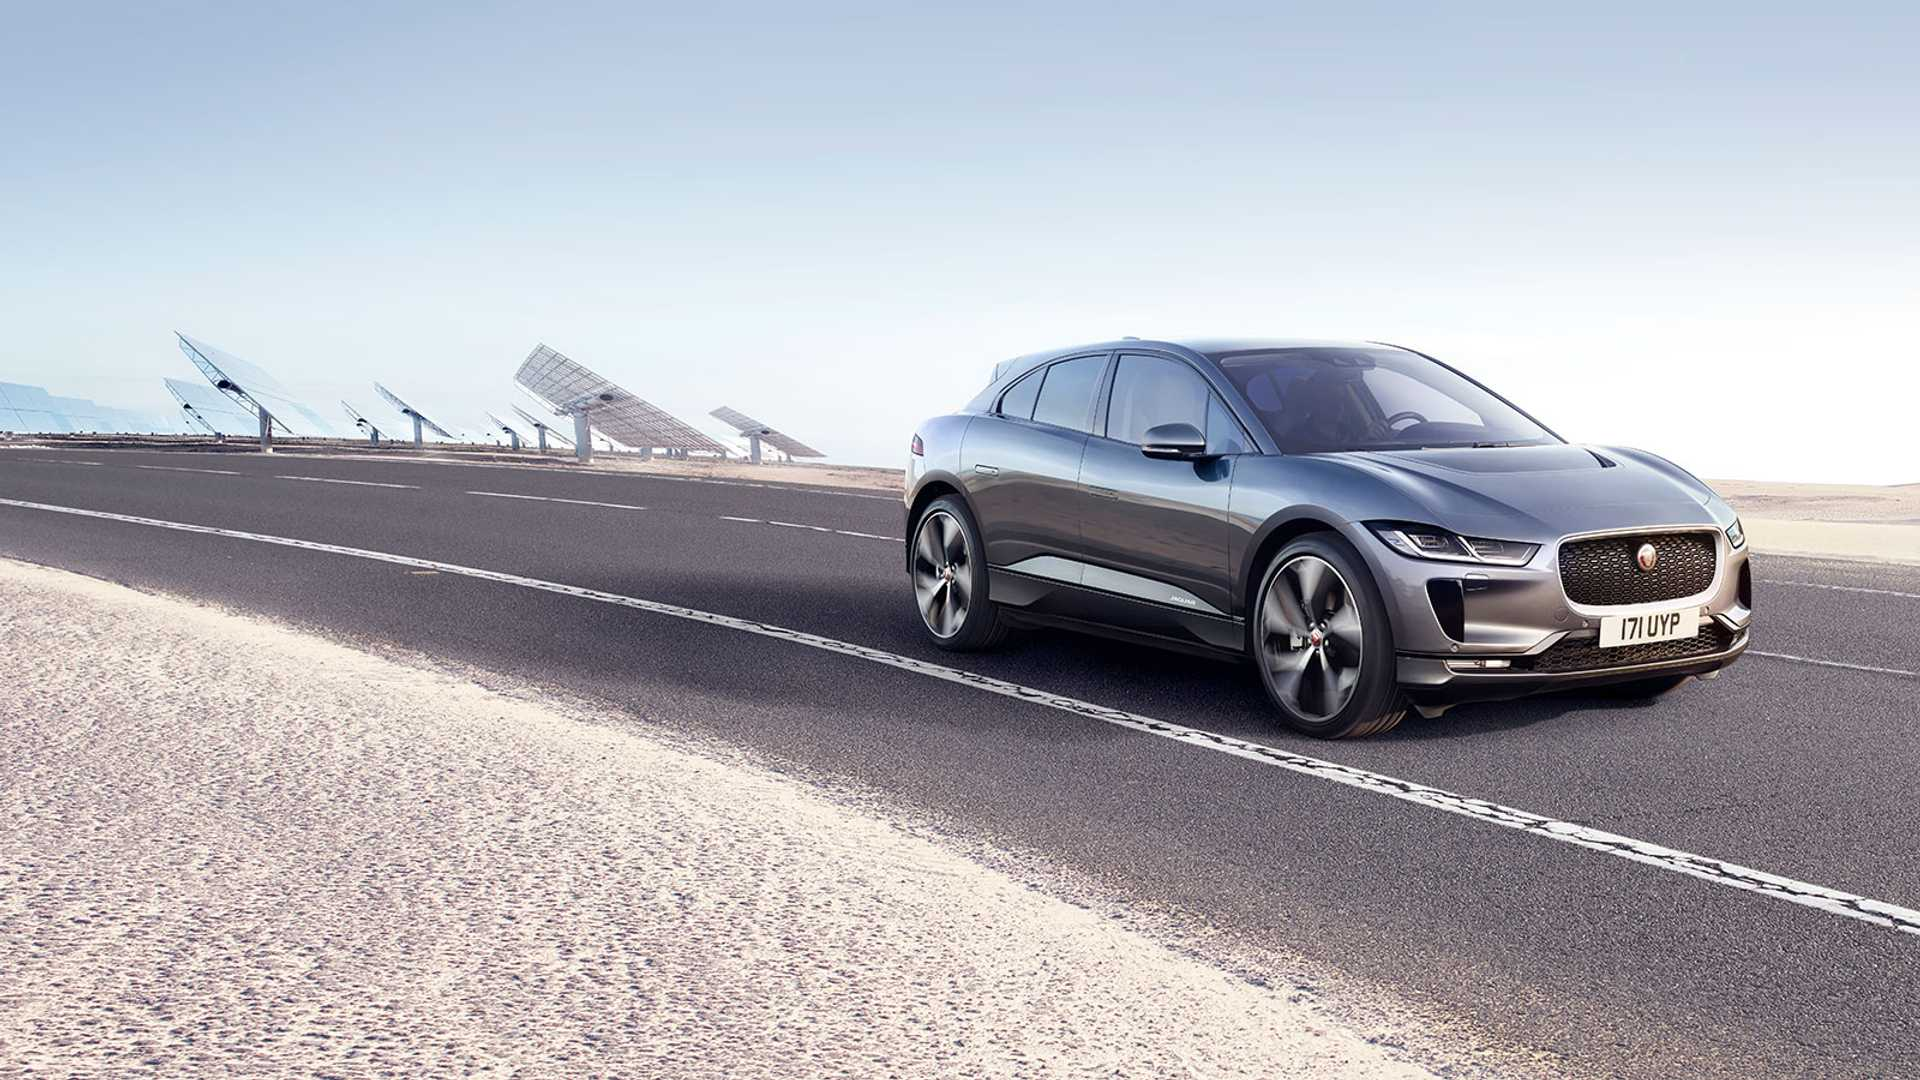 2019 Jaguar I-Pace Review - Not Better Than a Tesla? Video